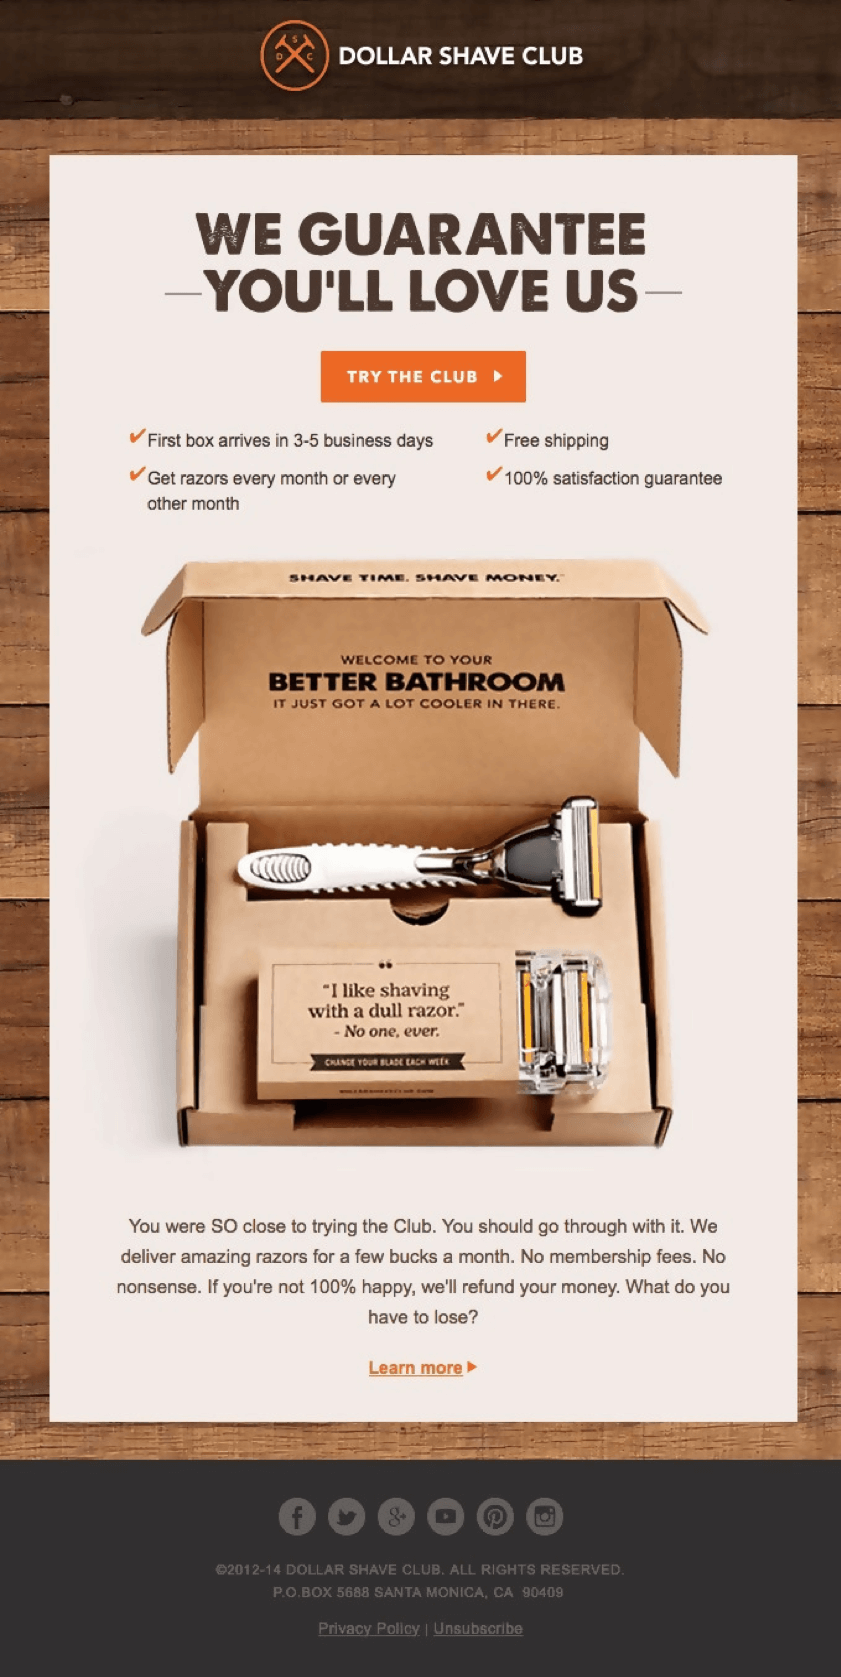 Dolar shave club offer which can't be refused by any customer